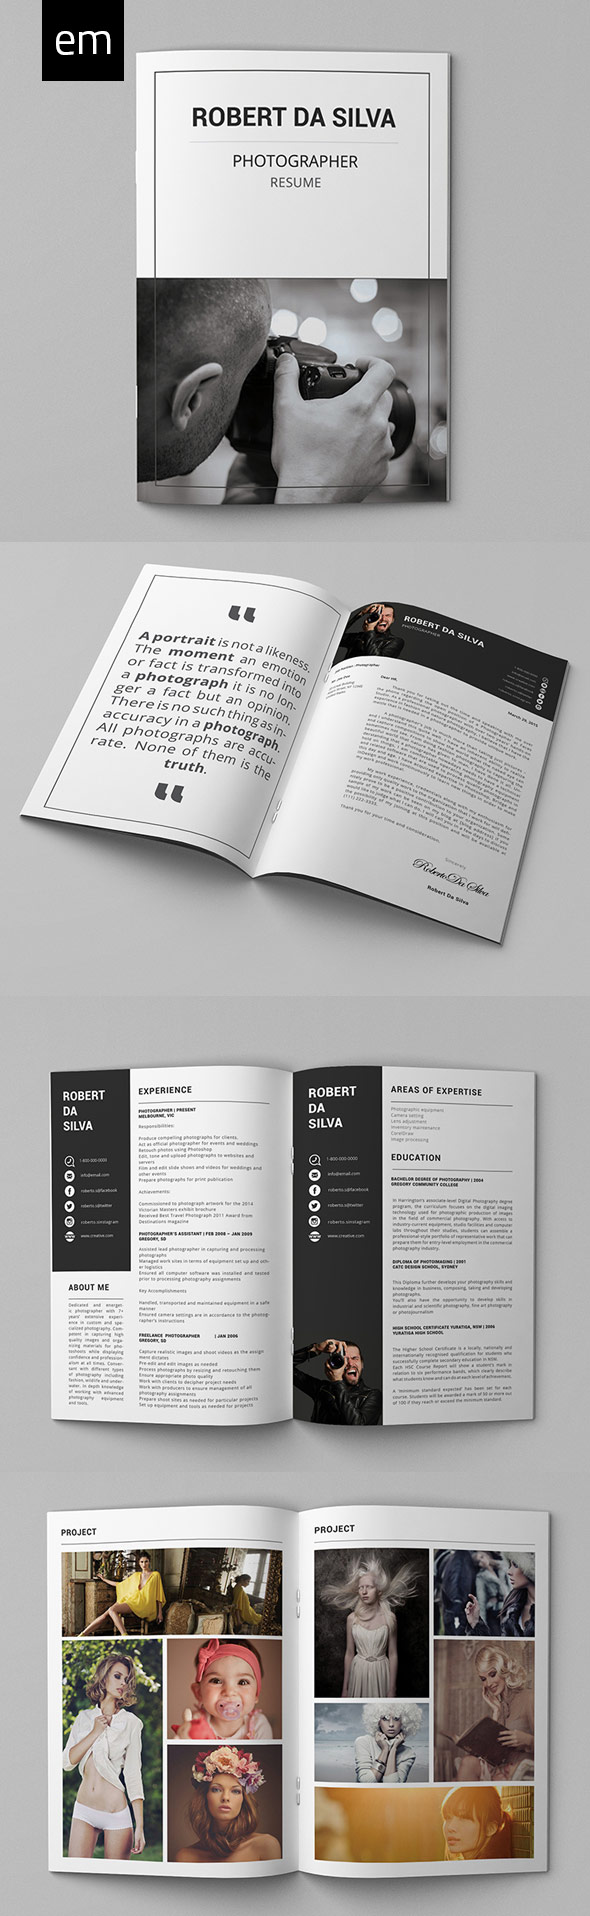 25 creative resume templates to land a new job in style photography resume portfolio pack